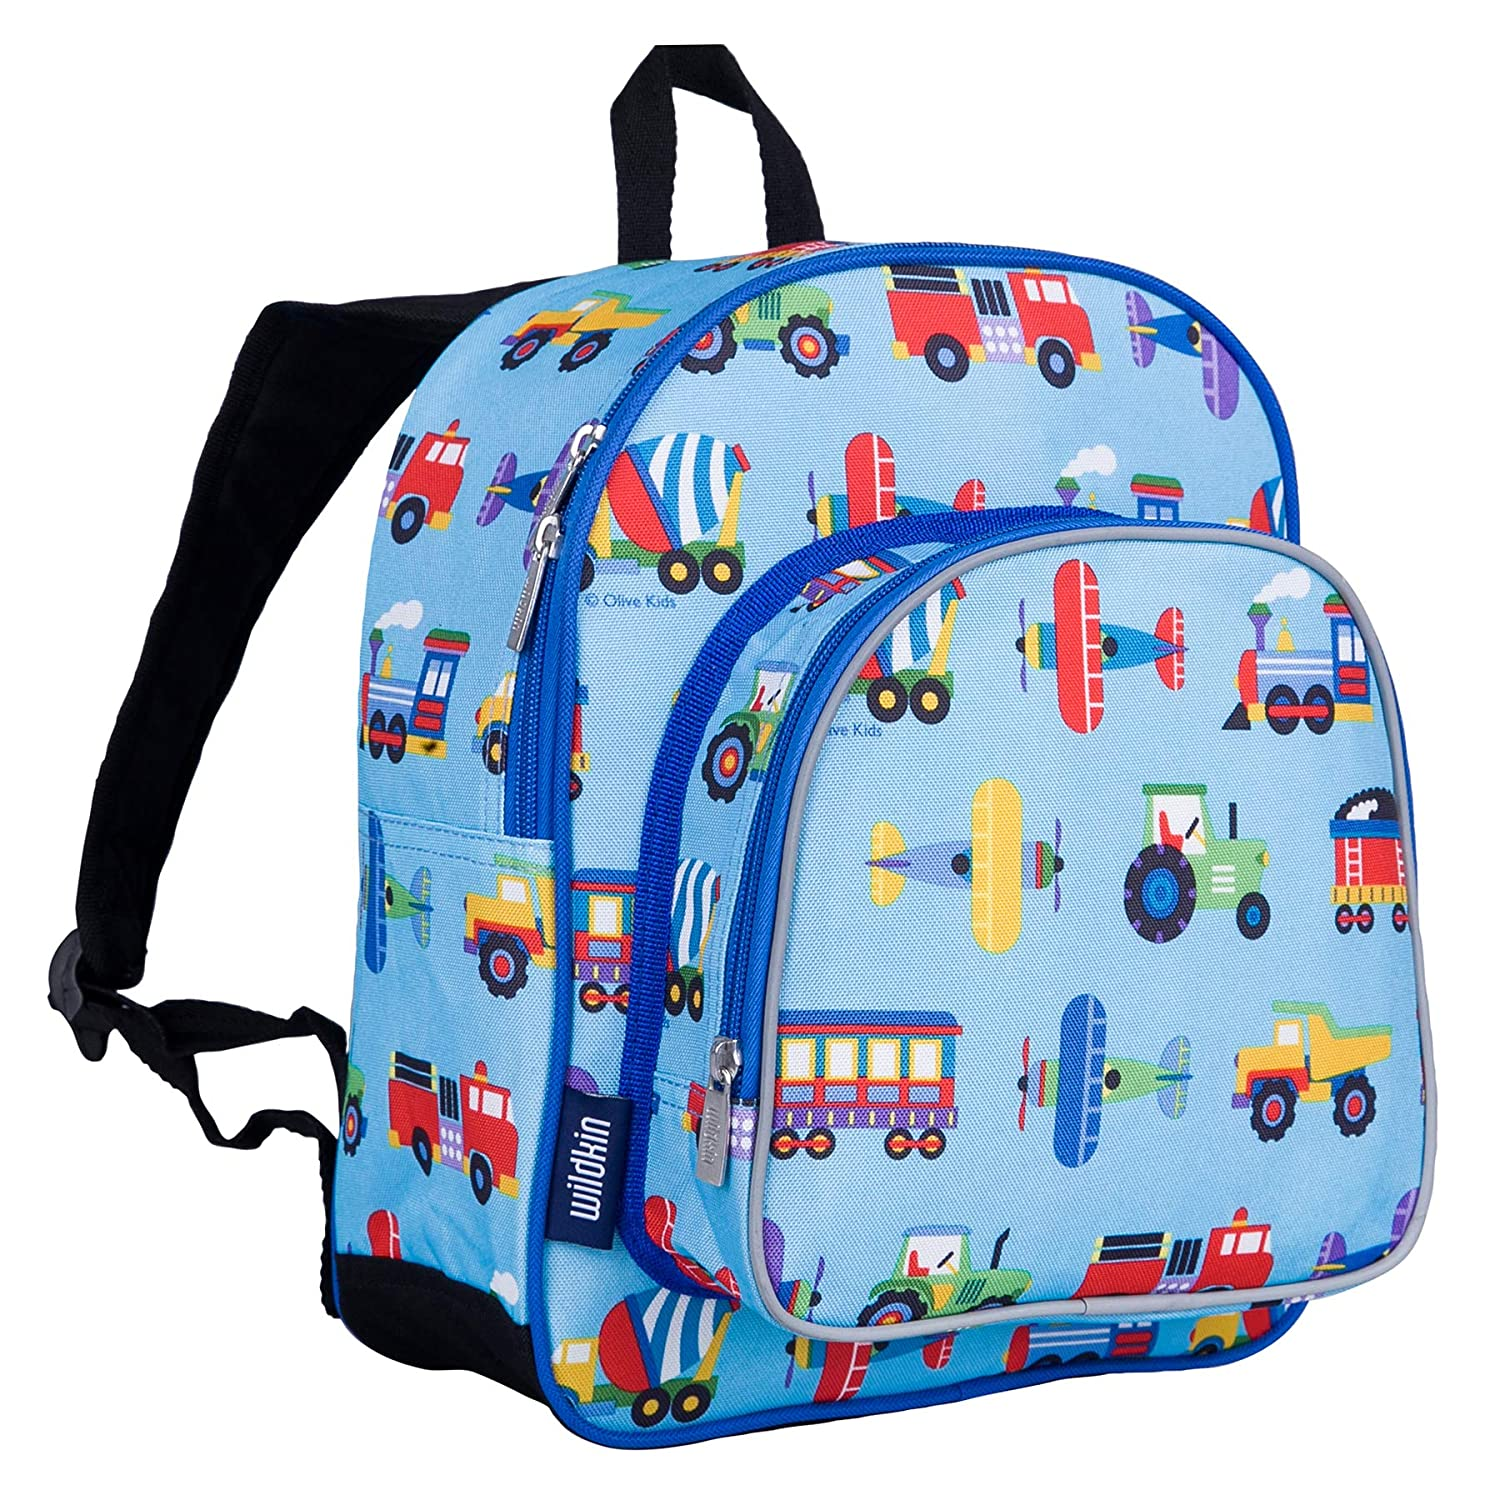 Wildkin 12 Inch Backpack, Includes Insulated, Food-Safe Front Pocket and  Side Mesh Water Bottle Pocket, Perfect for Preschool, Daycare, and Day  Trips, ... 1d7913d5d8